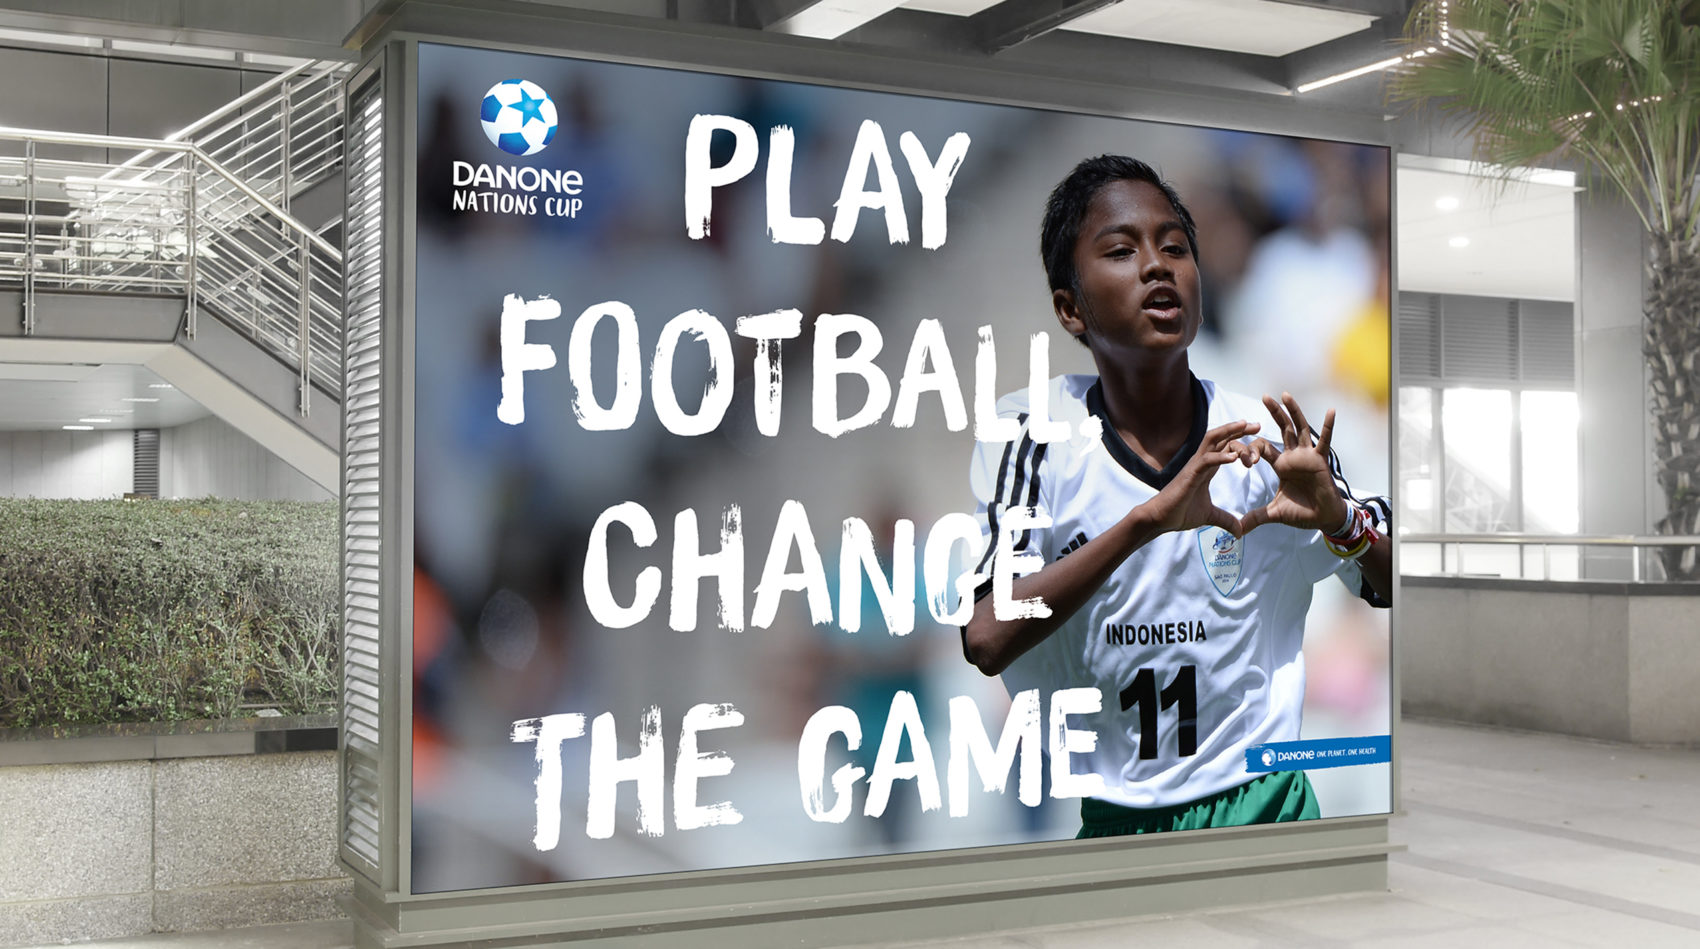 Projet_project_Danone_Nations_Cup_edition_2019_campagne_campaign_communication_globale_global_branding_2